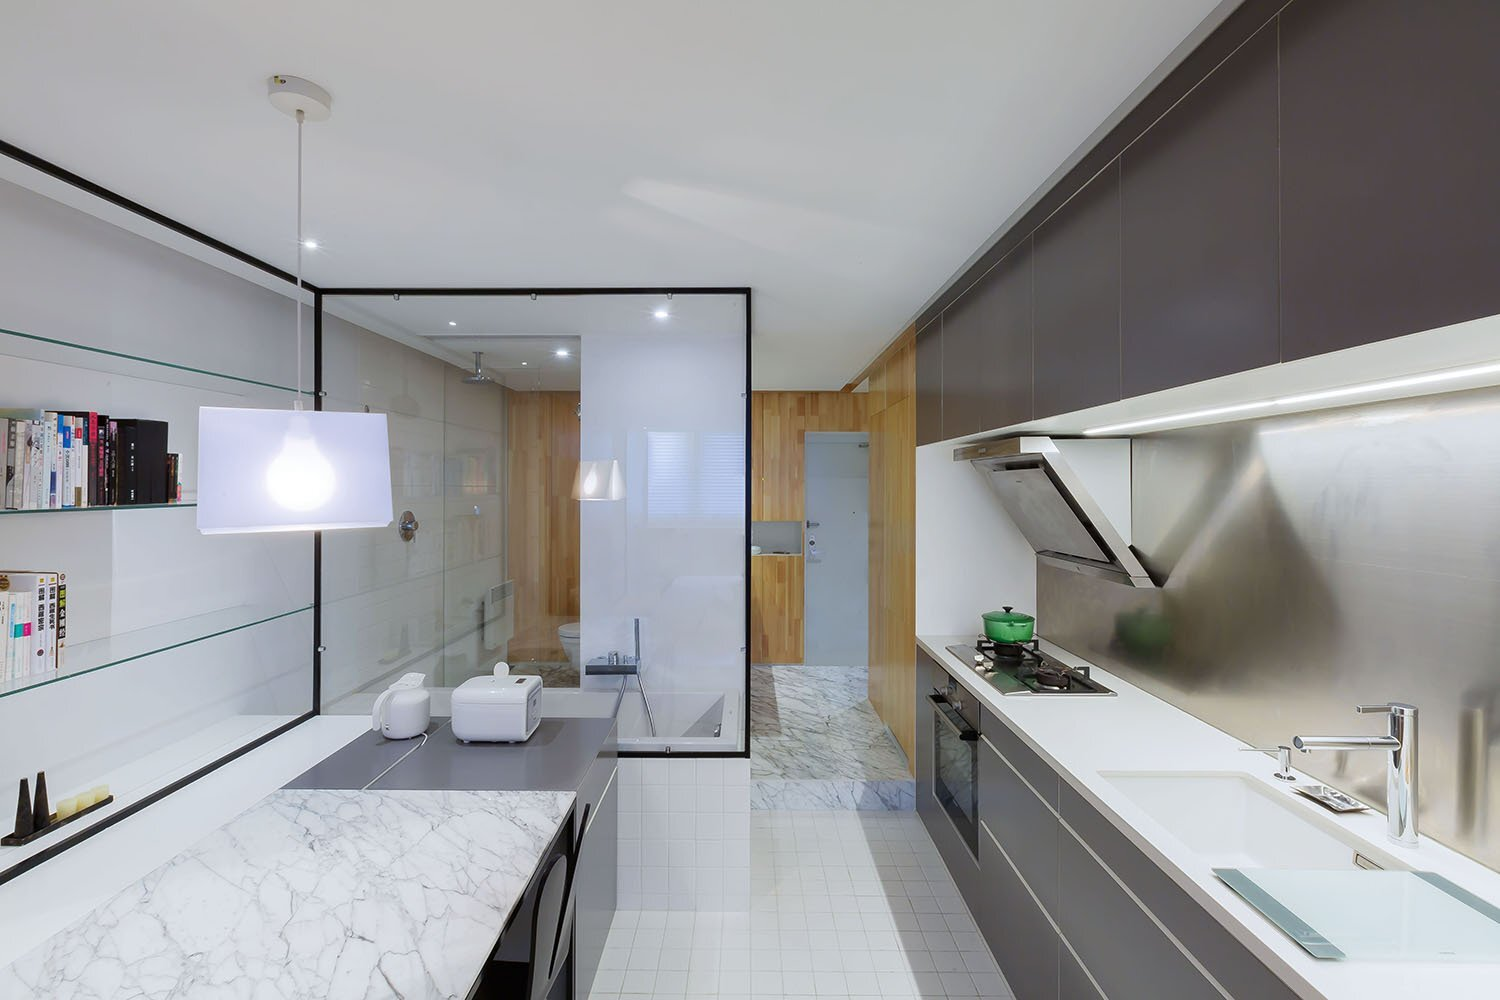 Apartment 37 - Atelier Mearc - China - Kitchen - Humble Homes